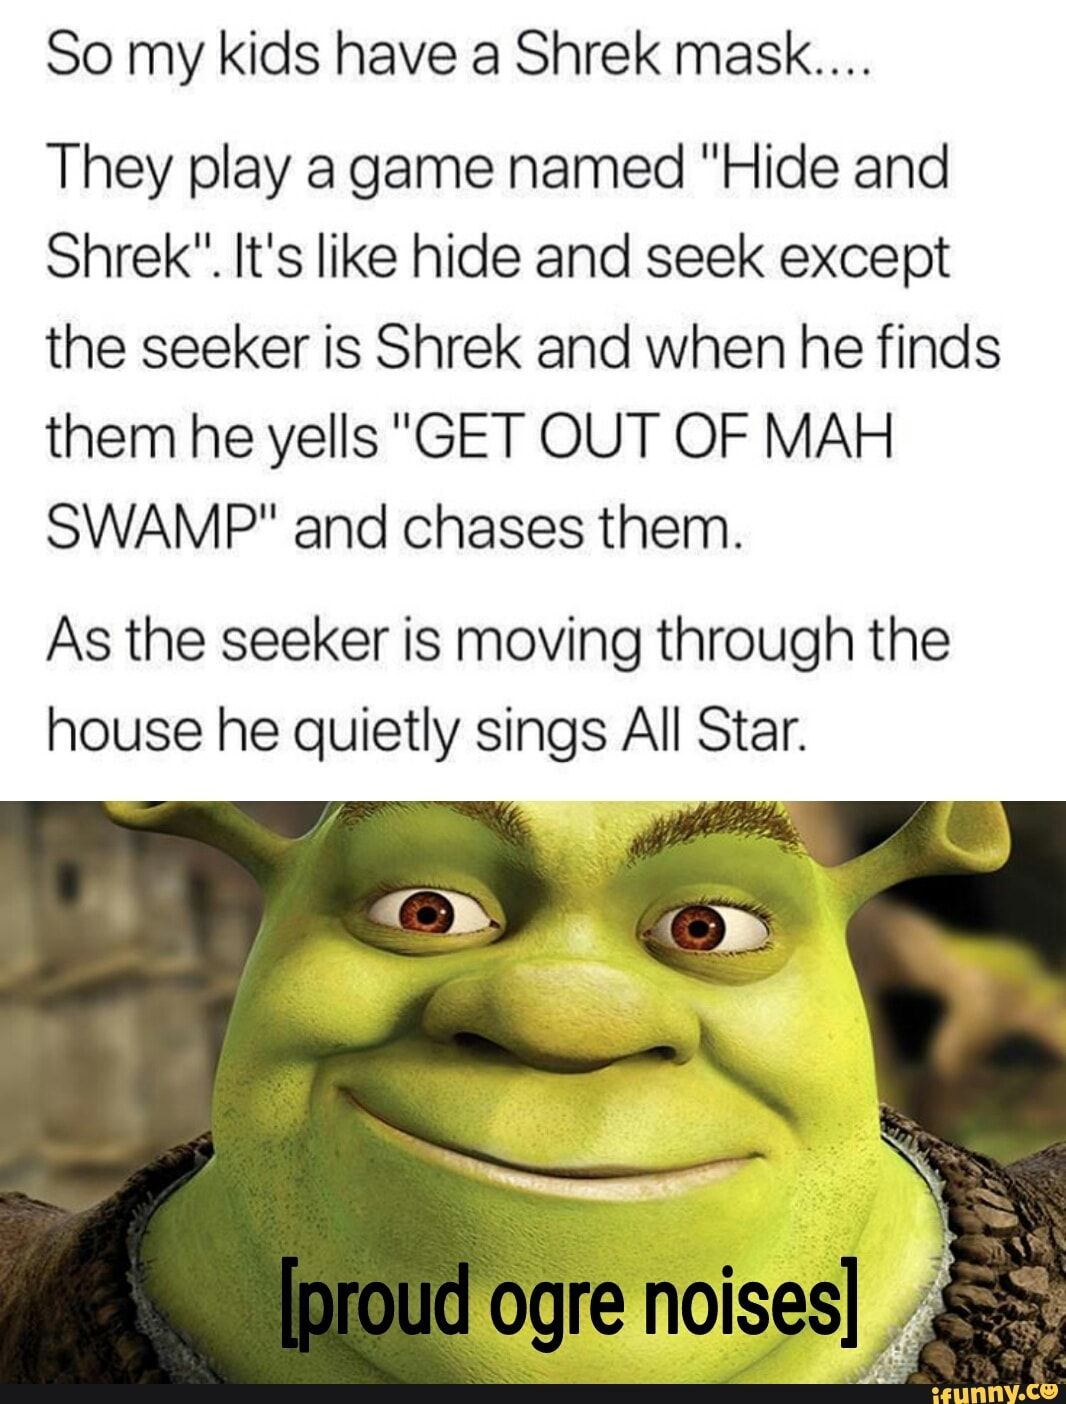 So My Kids Have 3 Shrek Mask They Play A Game Named Hide And Shrek It S Like Hide And Seek Except The Seeker Is Shrek And When He Finds Them He Yells